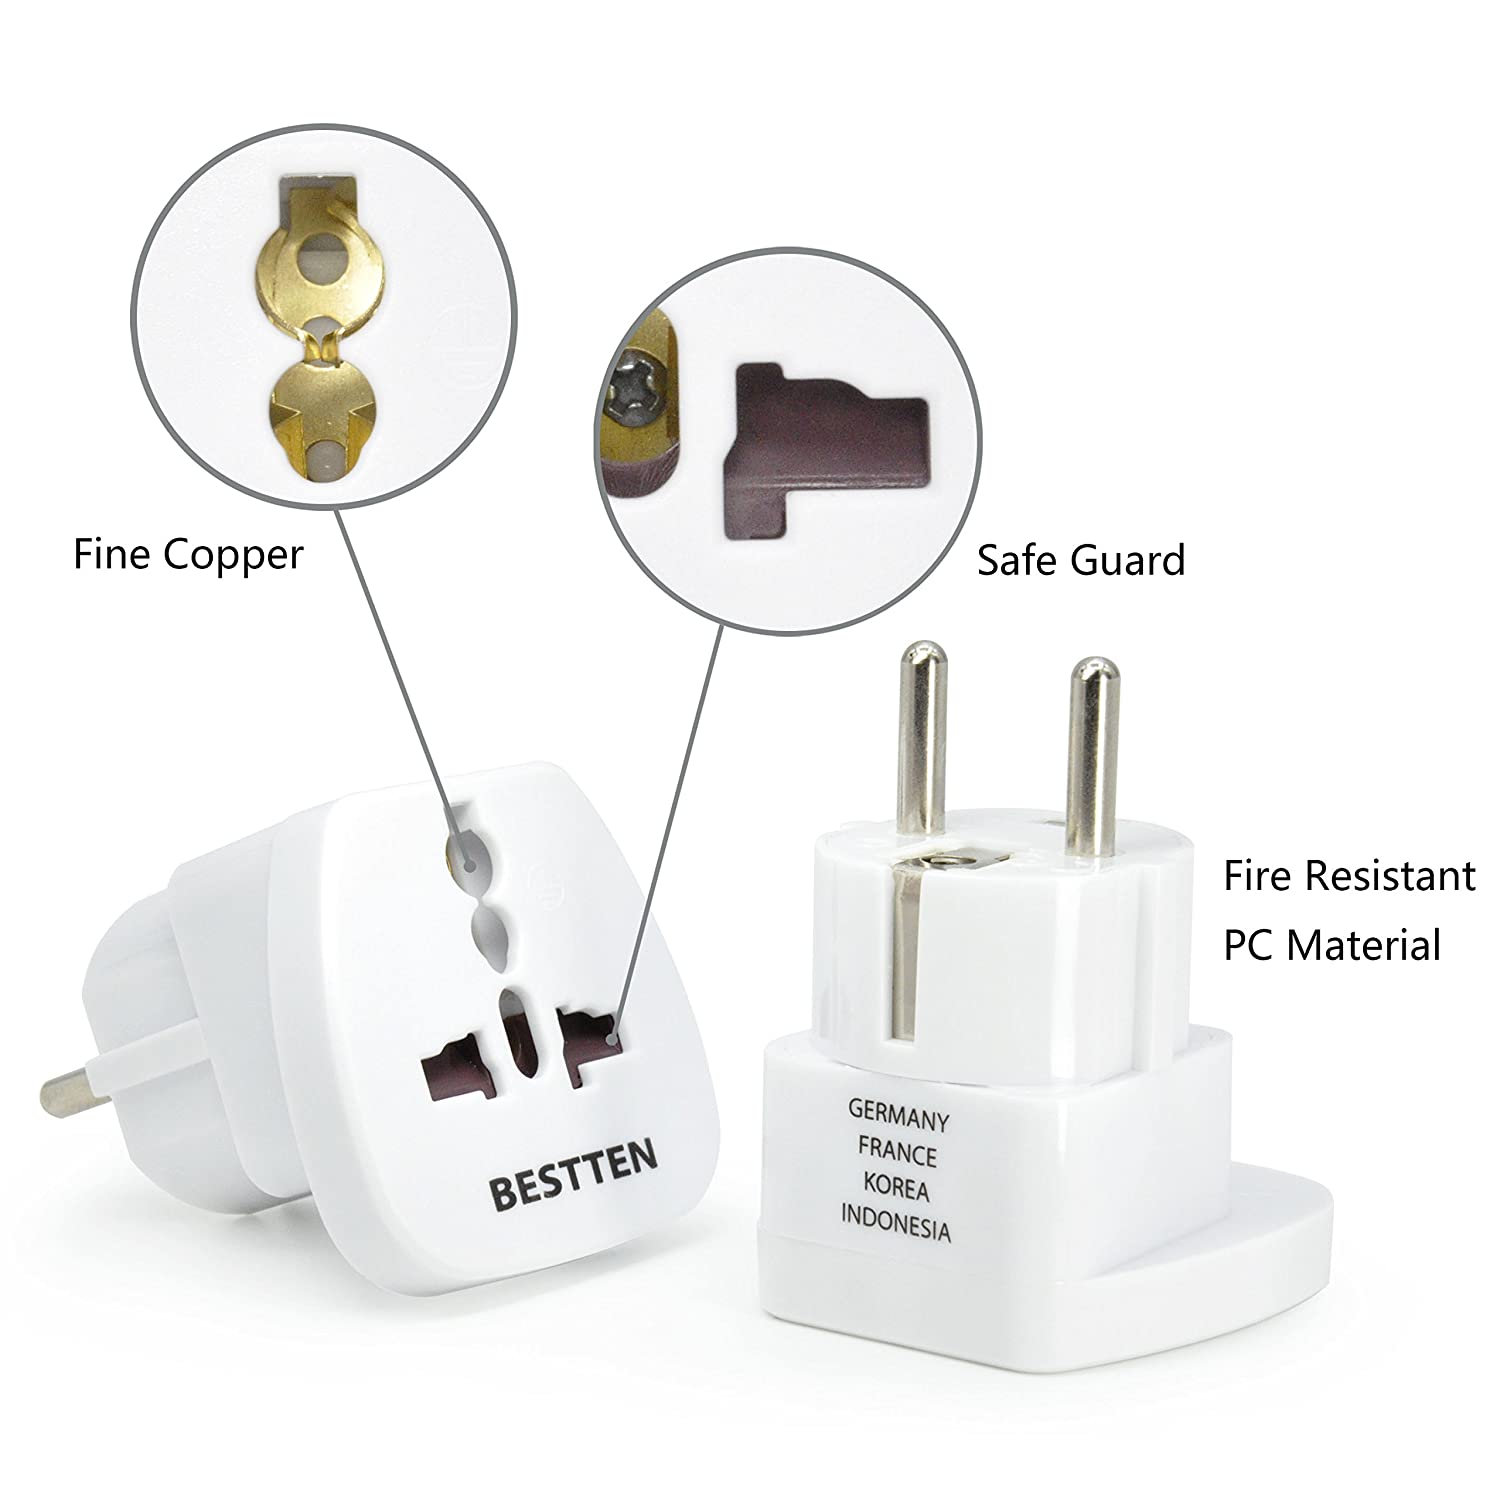 Travel Adapter For Europe Russia South Korea Egypt Iran Electrical Plug Outlet And Voltage Information Australia Indonesia See List Type F 2 Pin Grounded Three Prong Wall Tamper Resistant